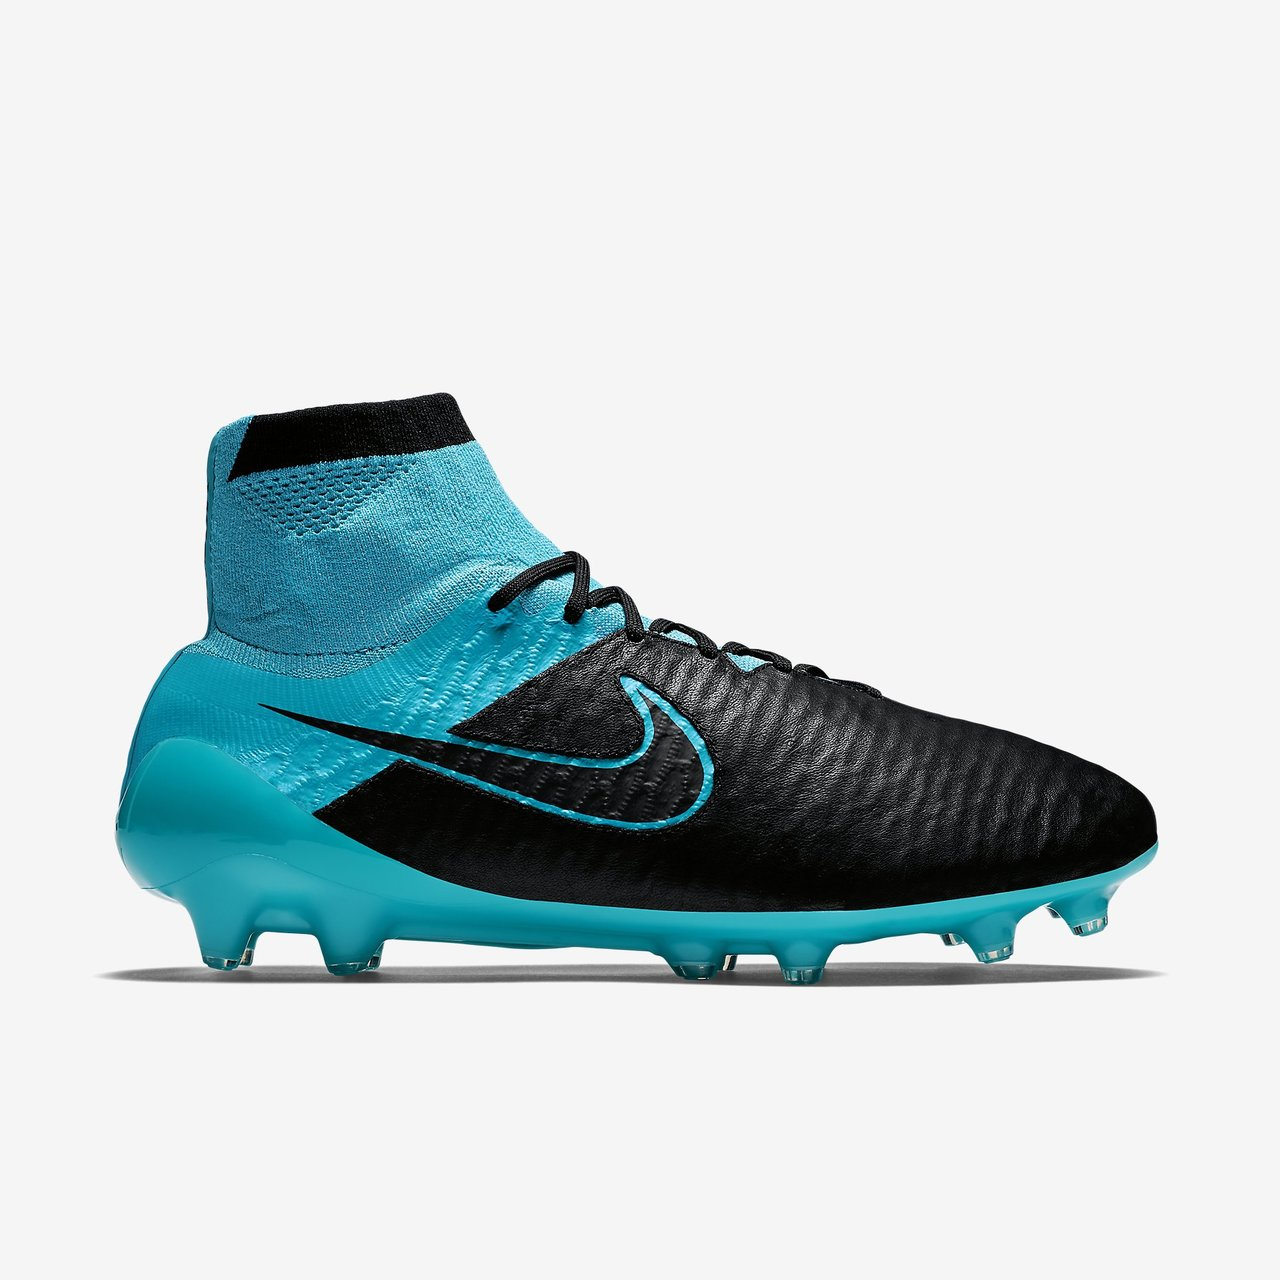 Click to enlarge image nike-magista-obra-leather-fg-tech- ...